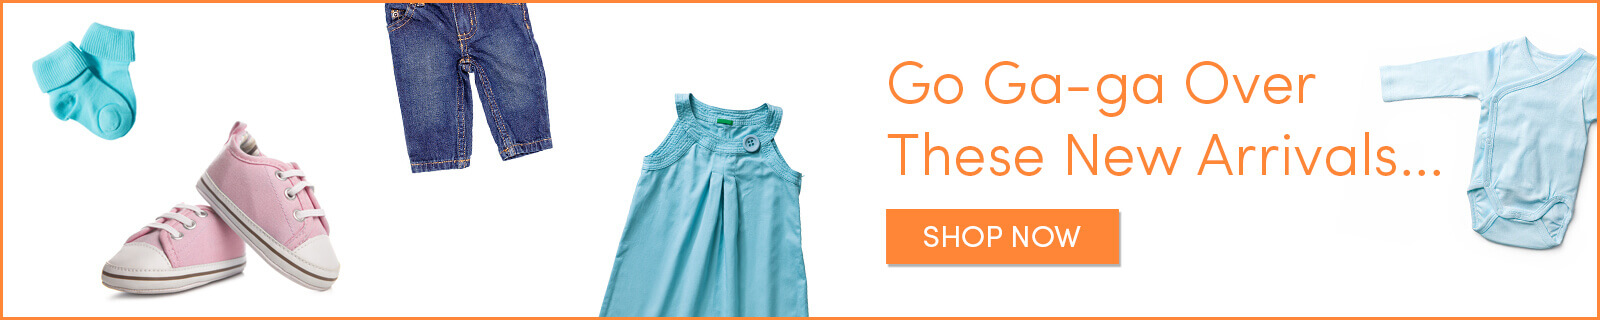 Shop New Arrivals in Cute Baby Clothes